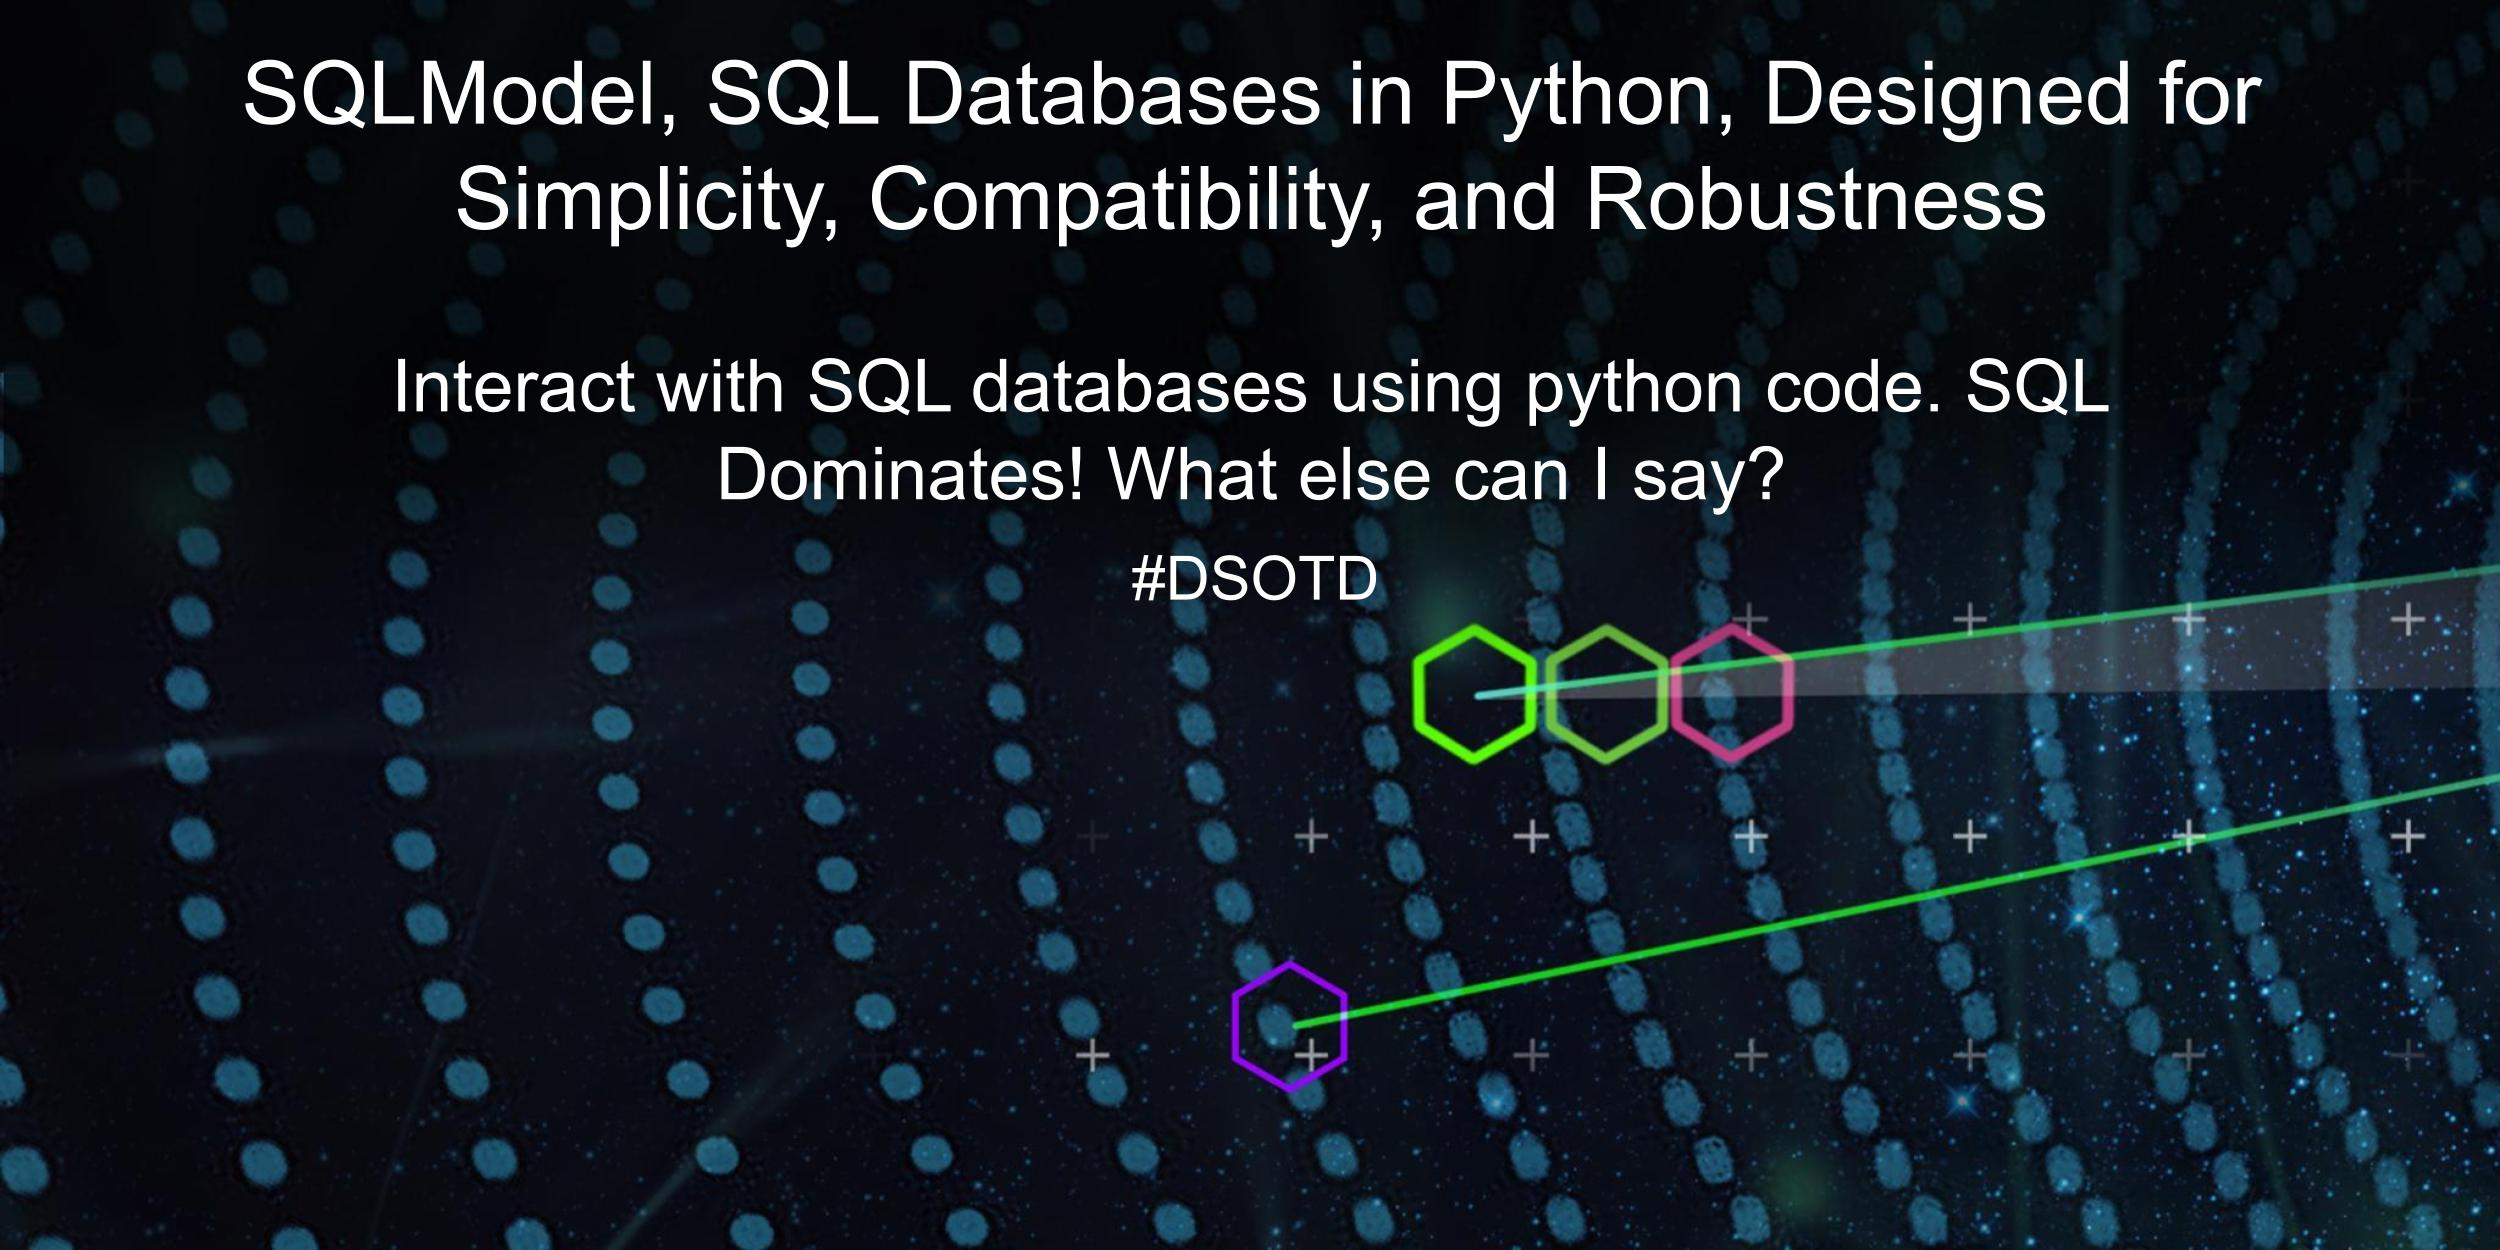 Interact with SQL databases using python code. SQL Dominates! What else can I say?